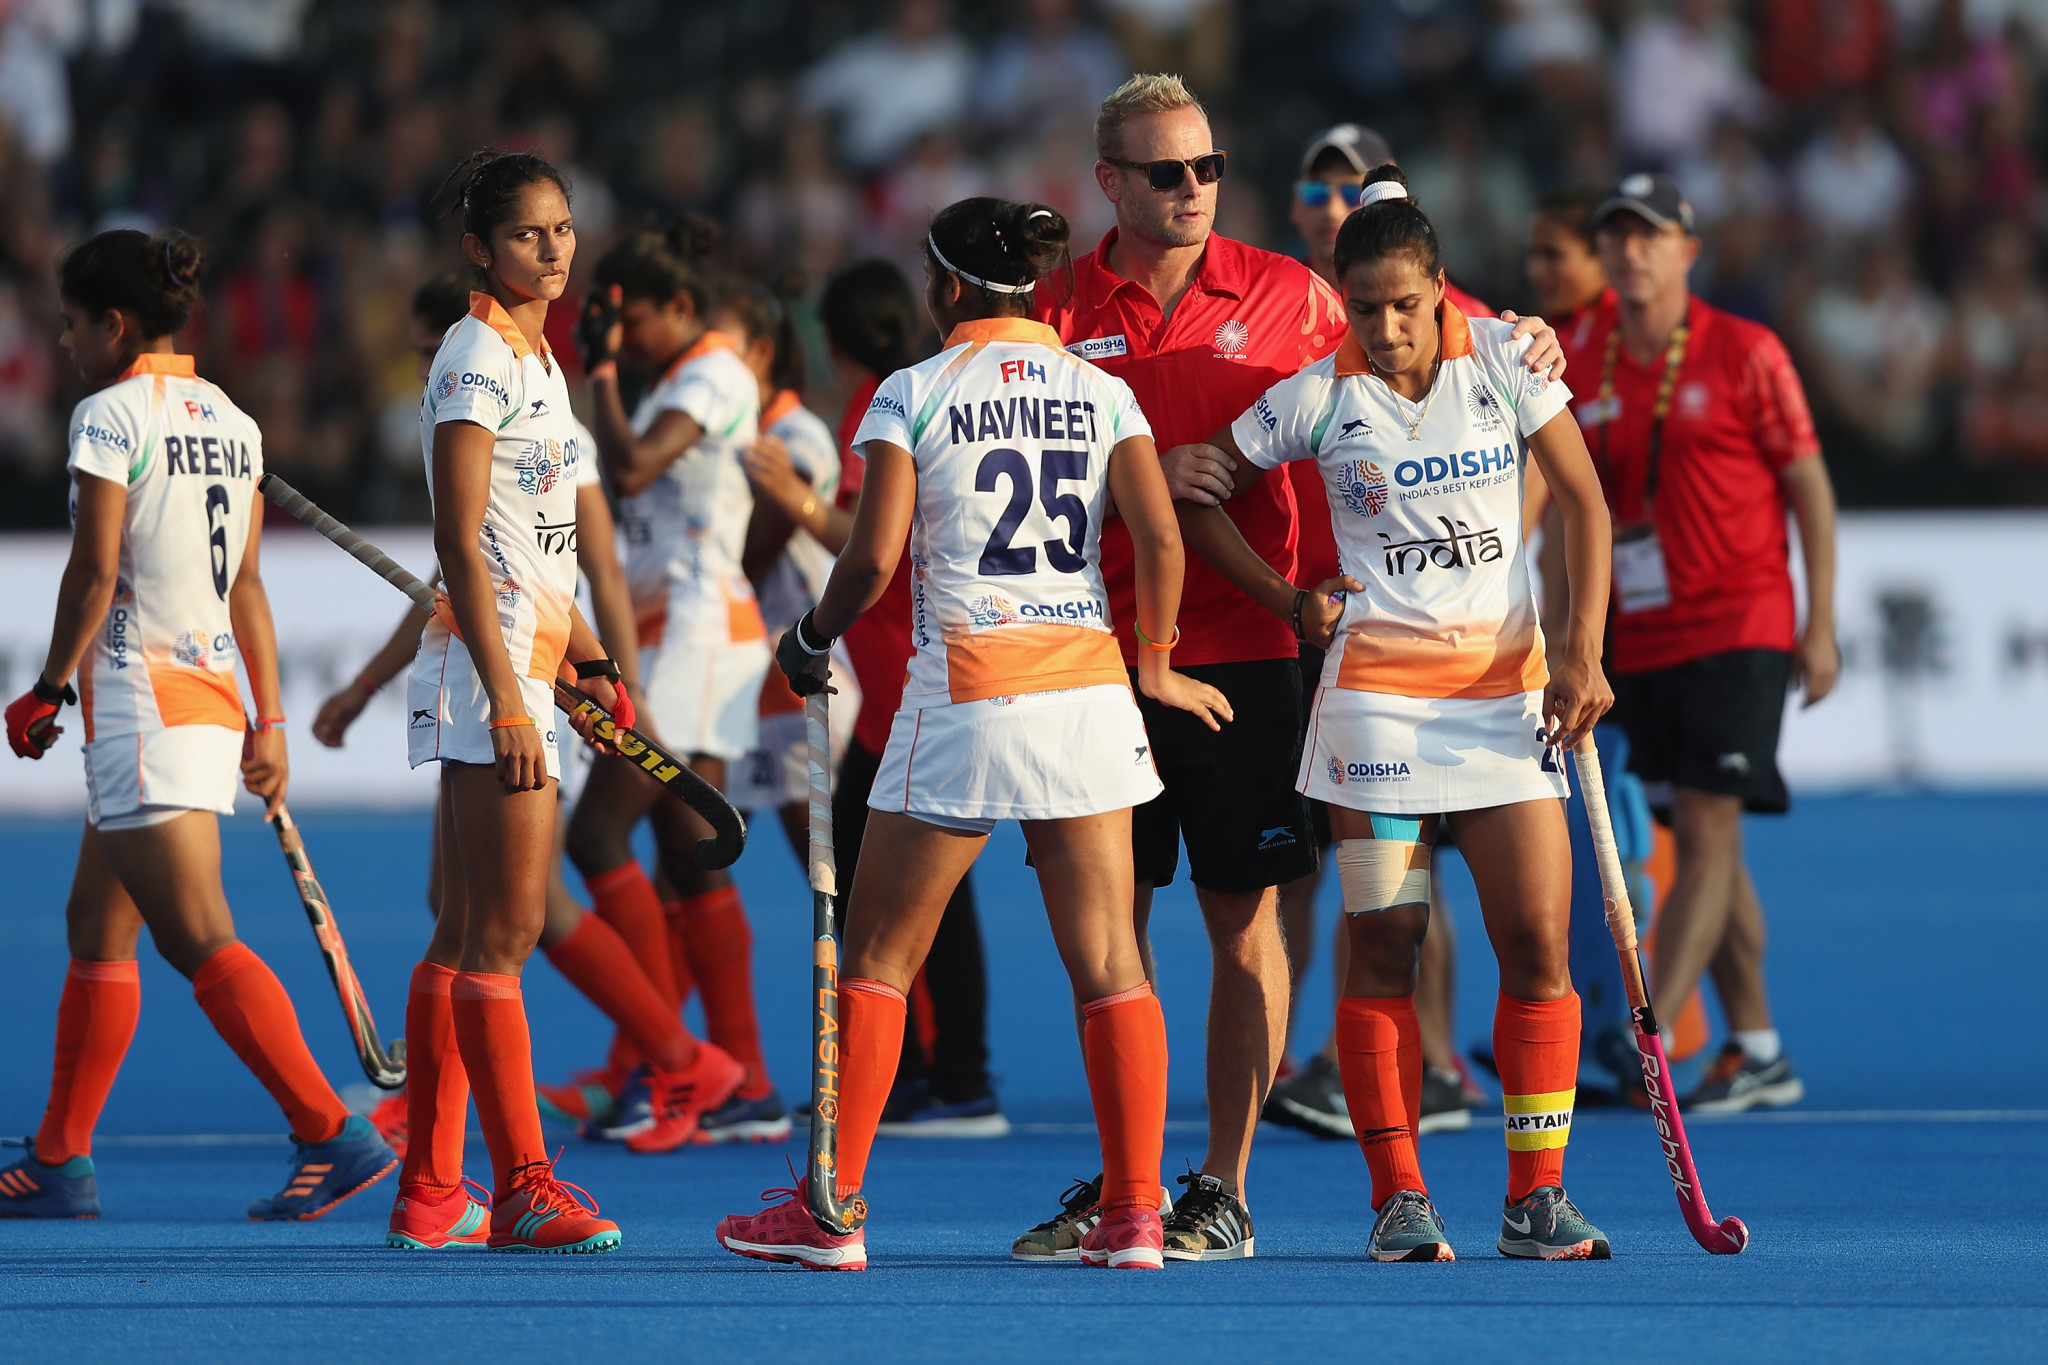 The Indian women's hockey team have been put through their paces in taekwondo sessions ©Getty Images